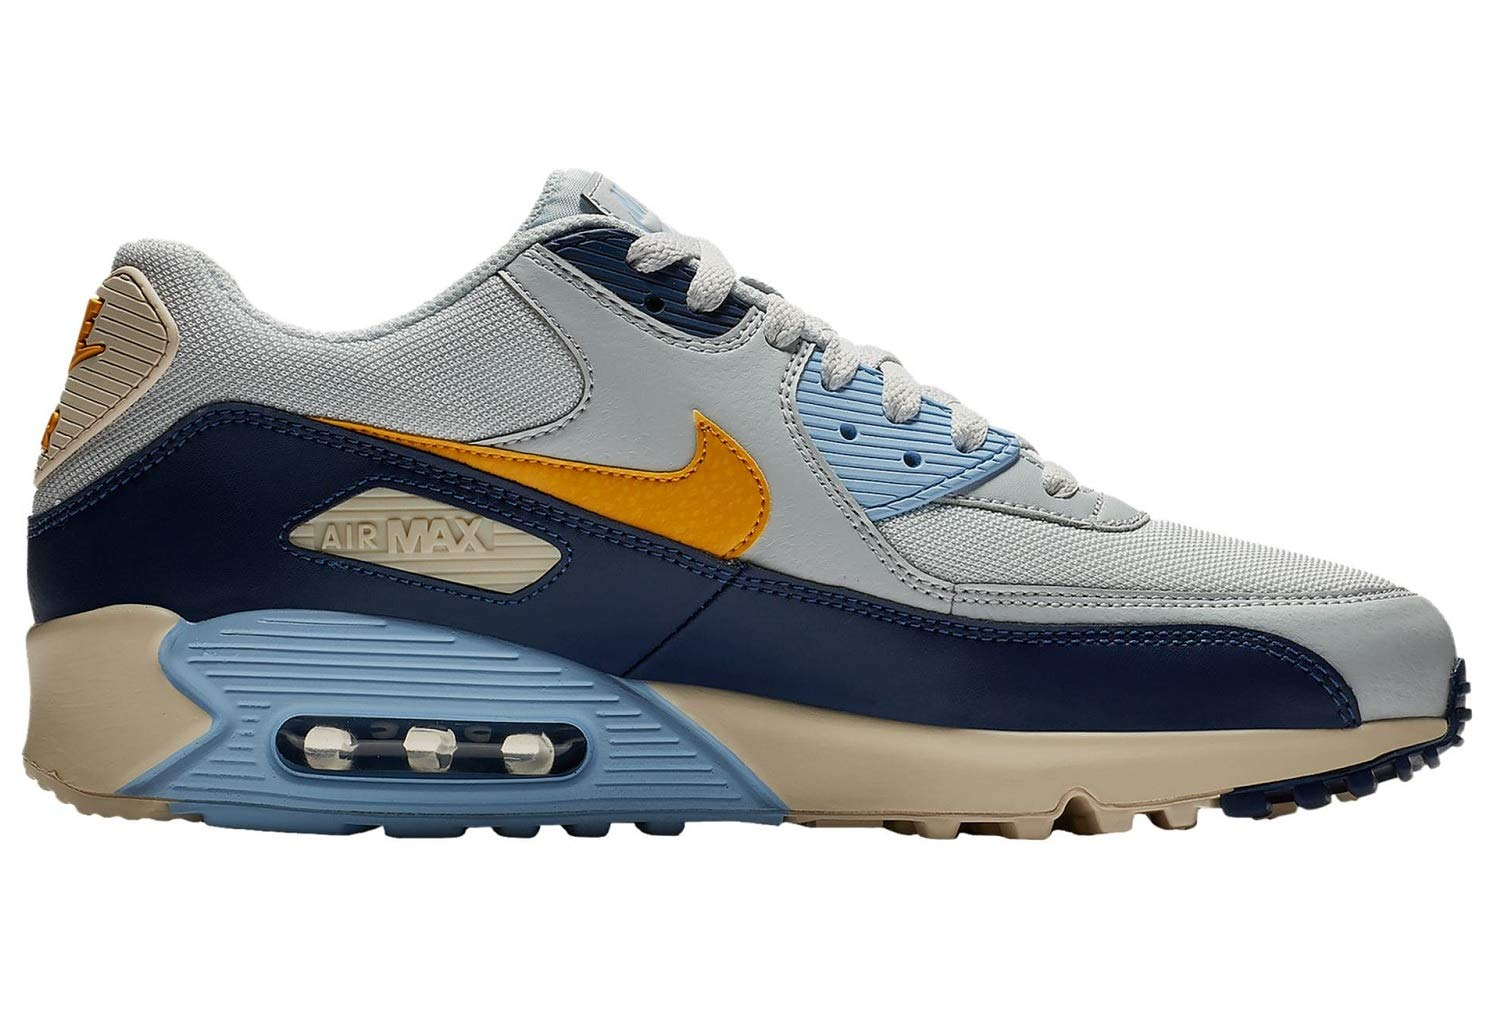 newest collection 86ad0 3e001 Galleon - Nike Mens Air Max 90 Essential Running Shoes Pure Platinum Yellow  Ochre Blue Void AJ1285-008 Size 11